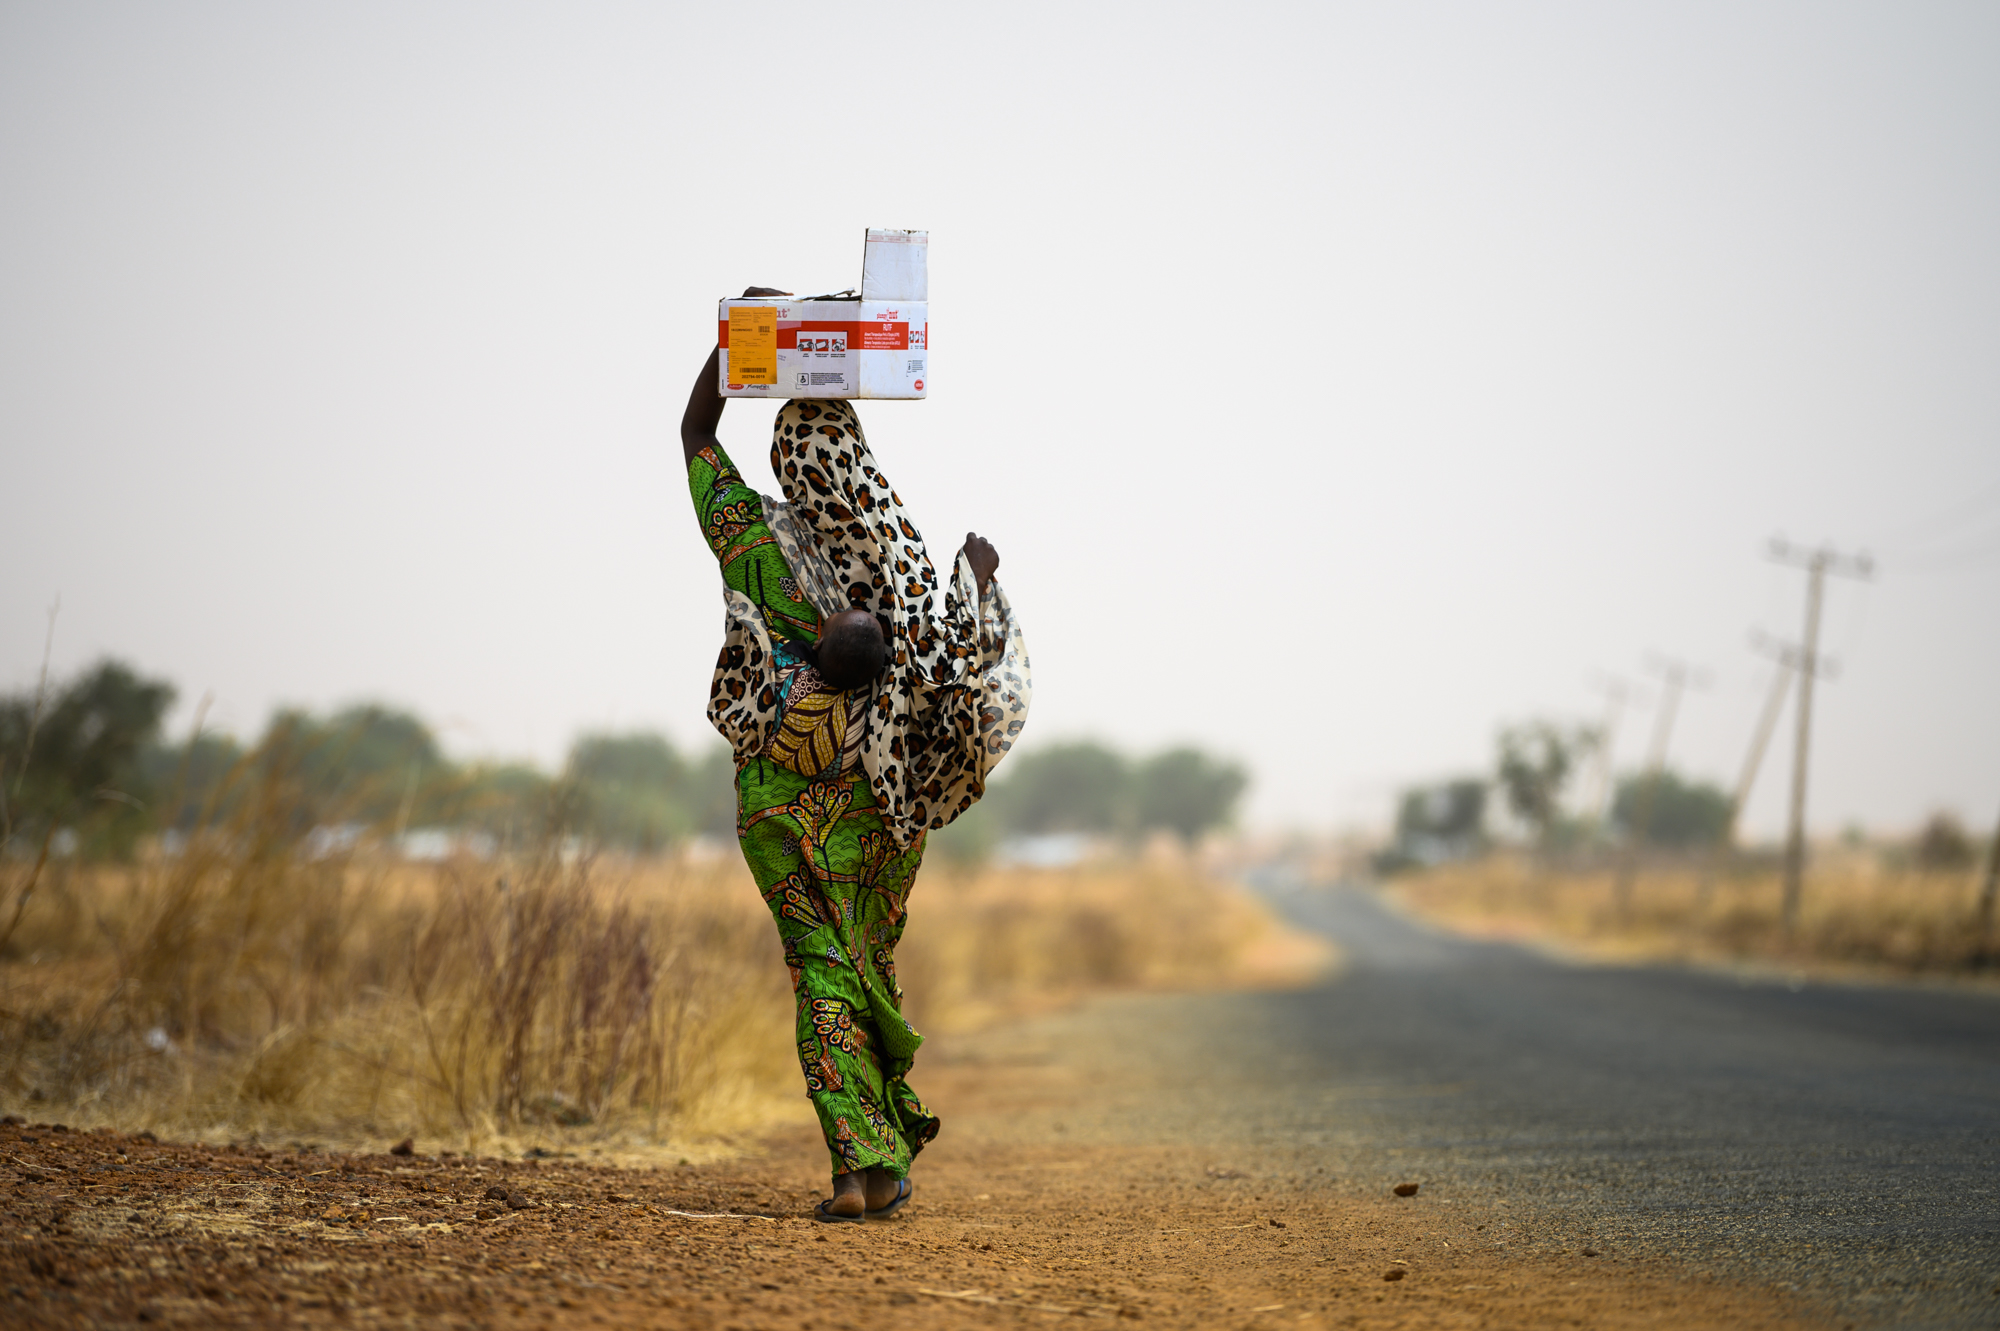 a mother carries her child on her back while carrying a box of food packets in Sokoto Nigeria